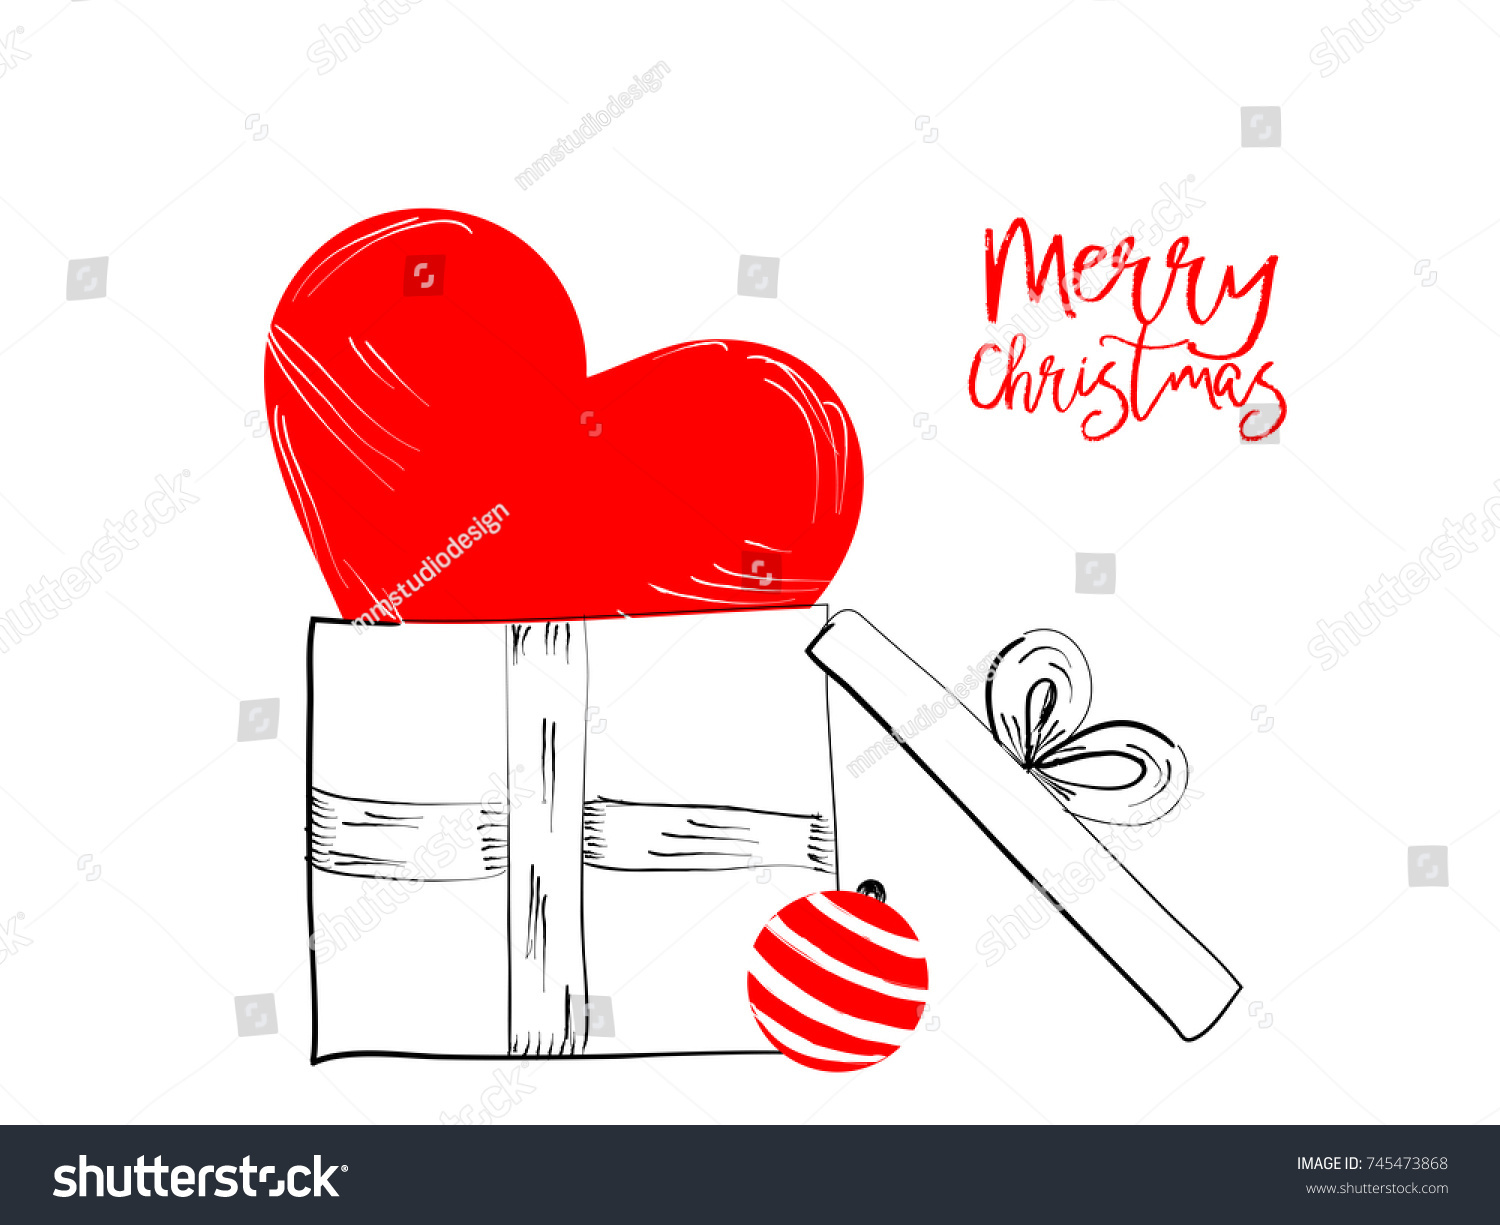 Merry Christmas Greetings Cards Hand Drawn Stock Vector (Royalty ...